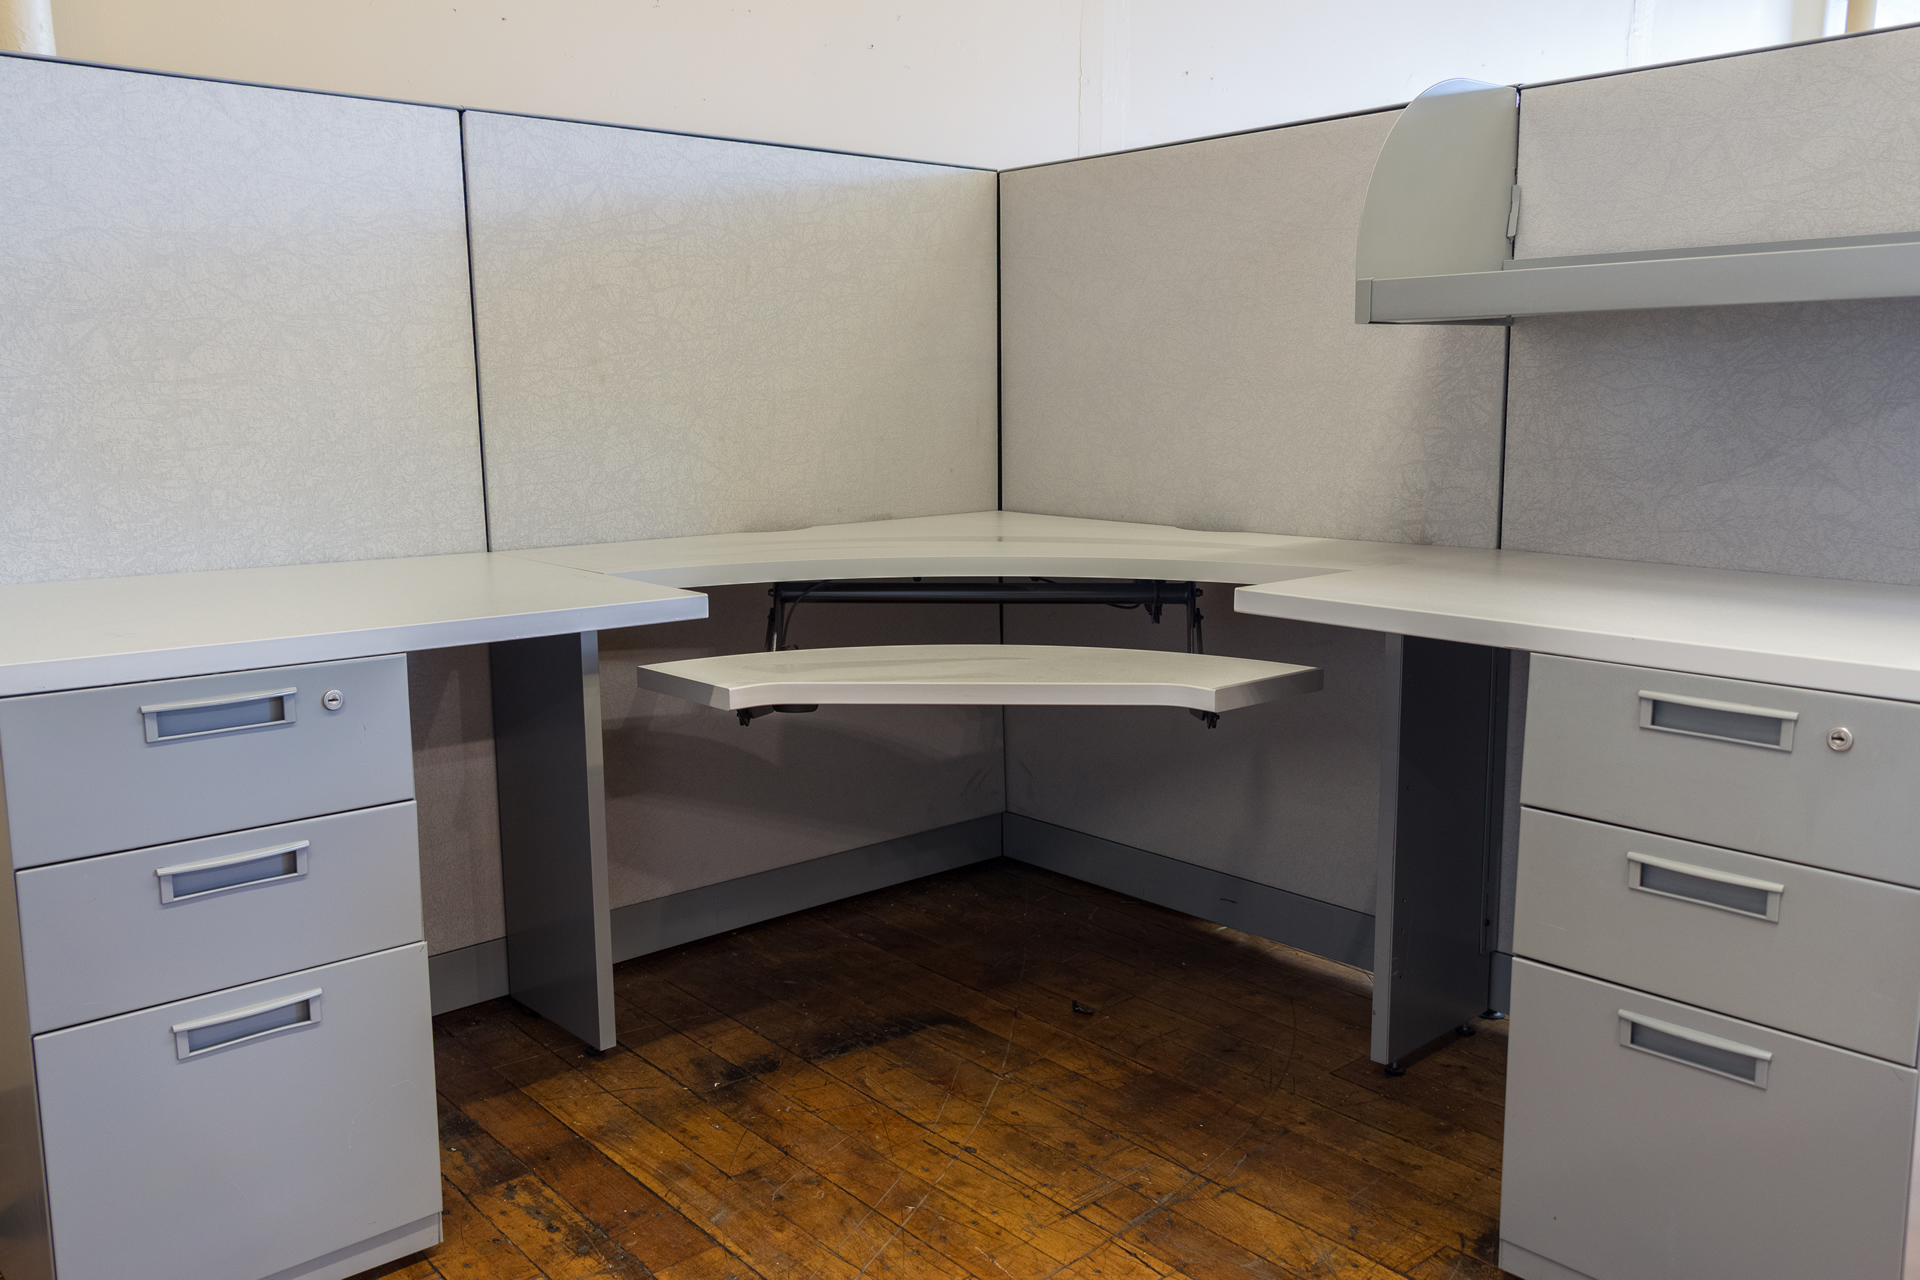 peartreeofficefurniture_peartreeofficefurniture_peartreeofficefurniture_steelcase-answer-cubicles-6.jpg